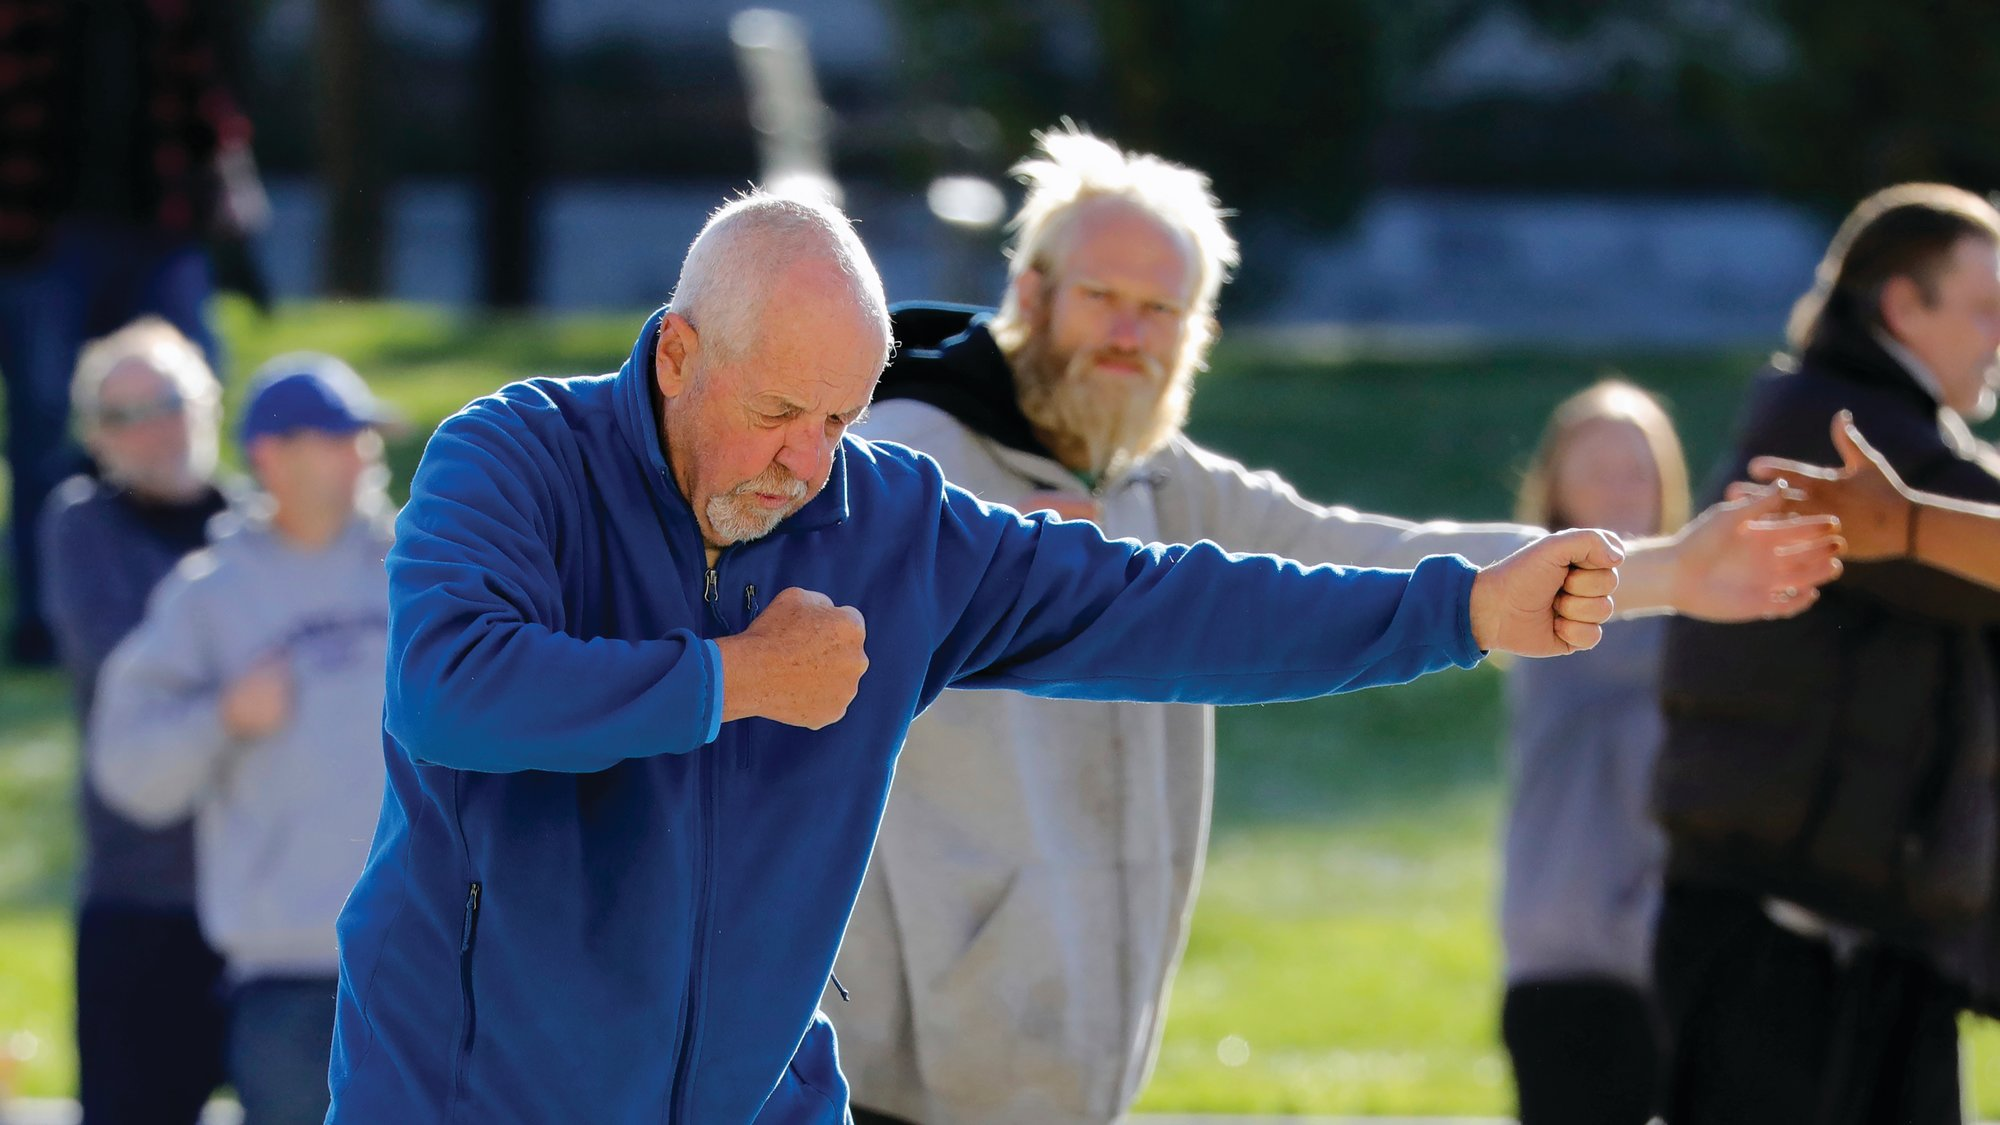 Bernie Hart, foreground, teaches tai chi in front of the Salt Lake Police headquarters, in Salt Lake City.